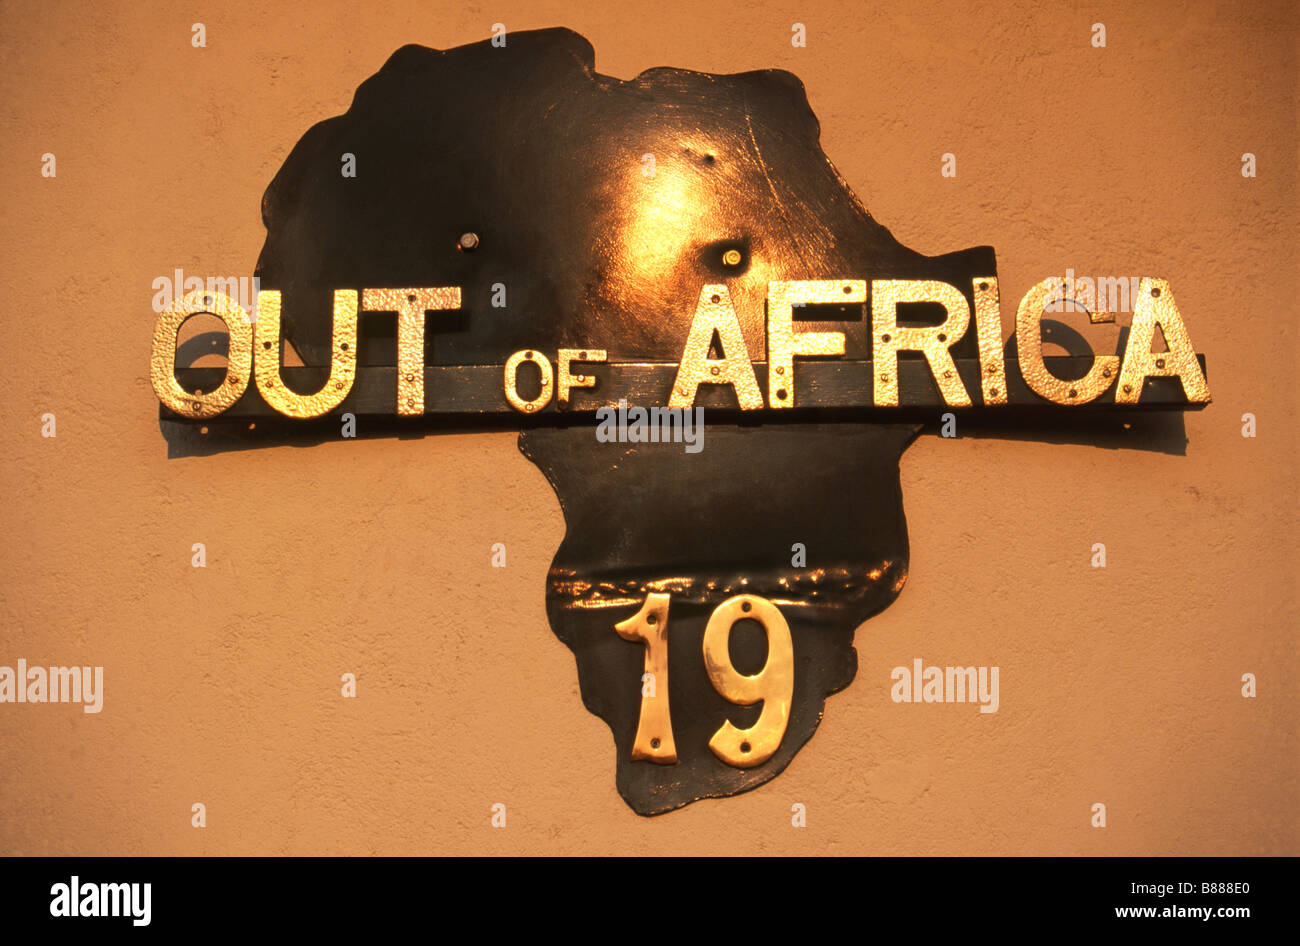 Sign with map of Africa and words 'OUT OF AFRICA' in gold lettering superimposed - Stock Image